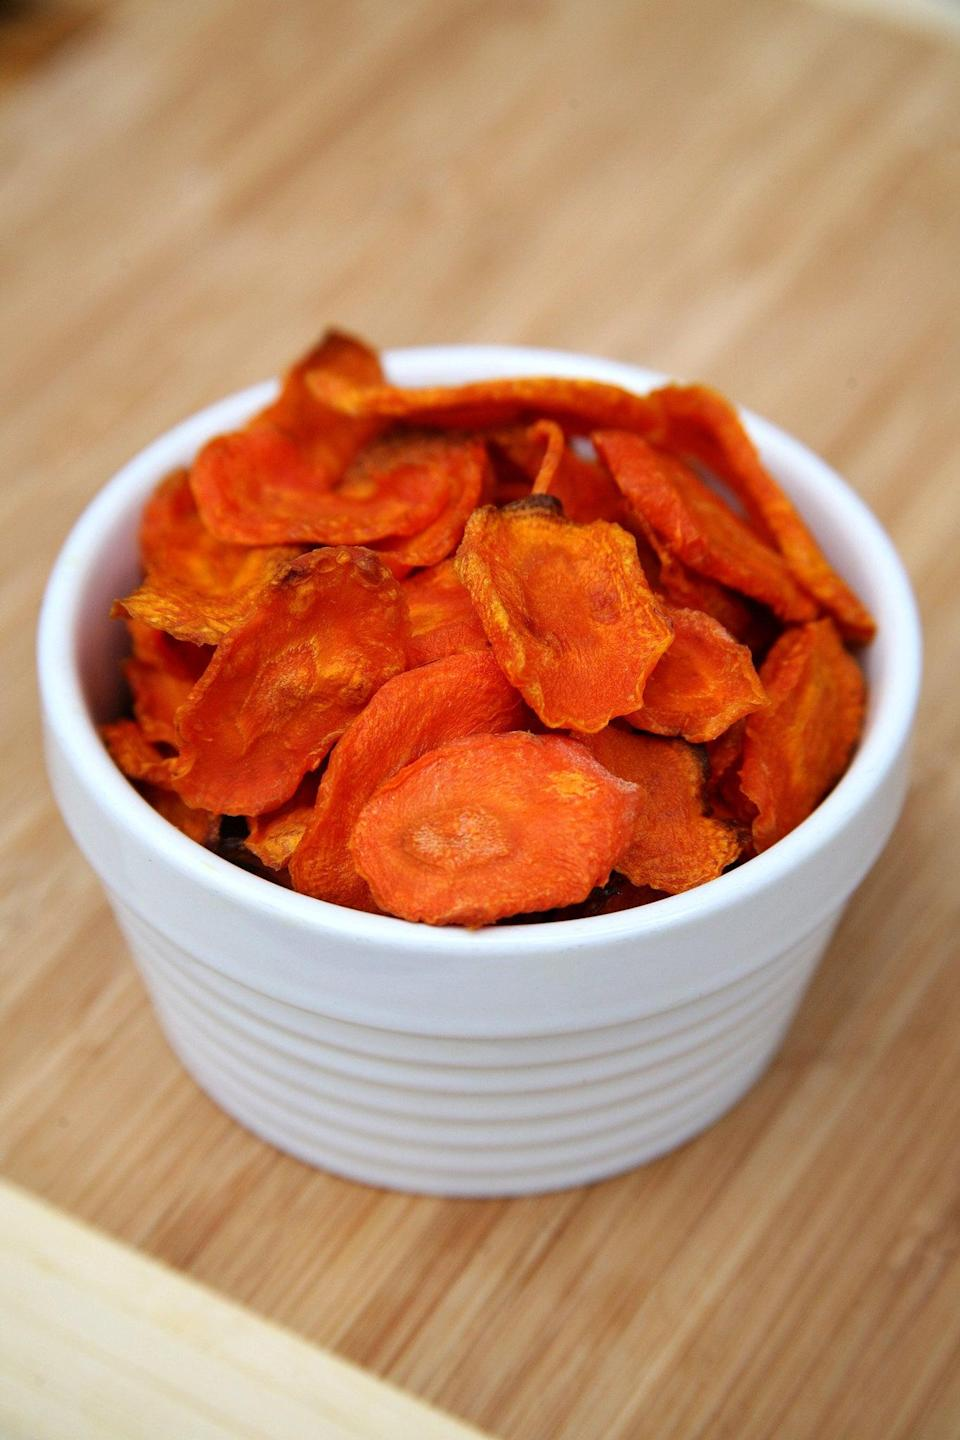 """<p>Made with carrots and baked instead of fried, these crunchy gems are a much healthier alternative to traditional potato chips.</p> <p><strong>Get the recipe:</strong> <a href=""""https://www.popsugar.com/fitness/Carrot-Chips-Recipe-34719564"""" class=""""link rapid-noclick-resp"""" rel=""""nofollow noopener"""" target=""""_blank"""" data-ylk=""""slk:baked carrot chips"""">baked carrot chips</a></p>"""